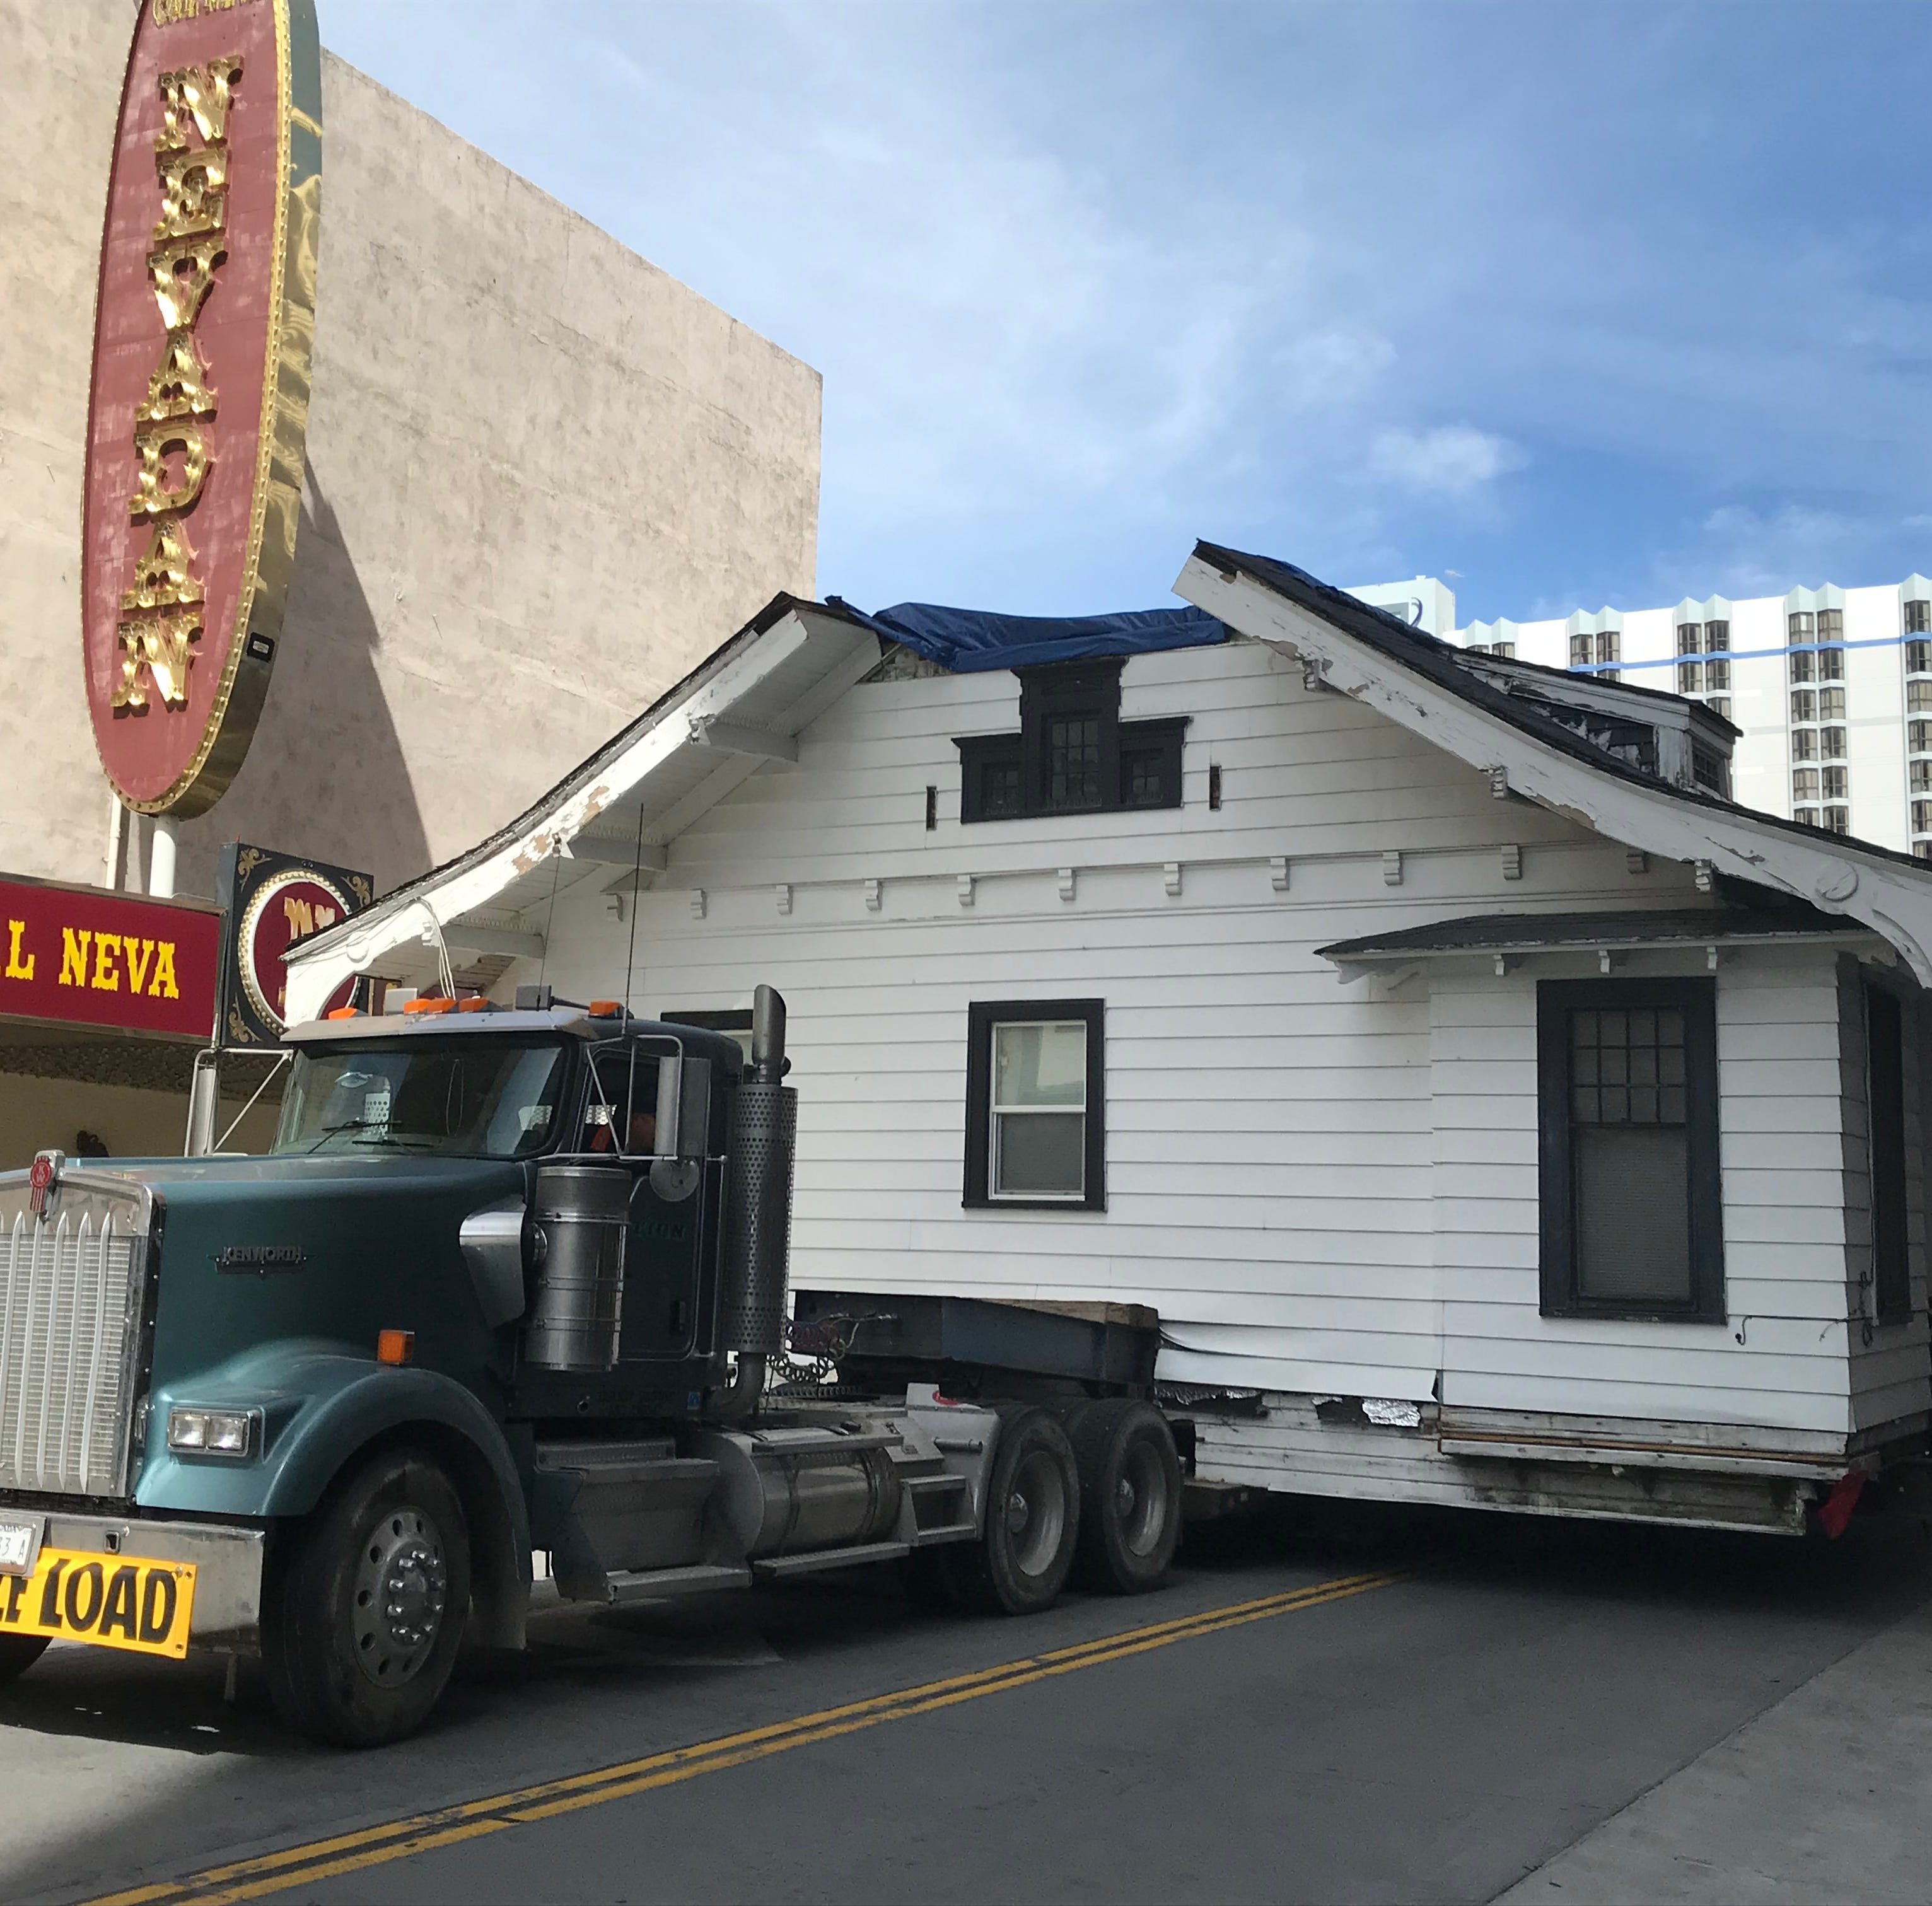 After drama in downtown Reno, historic UNR house finally relocated